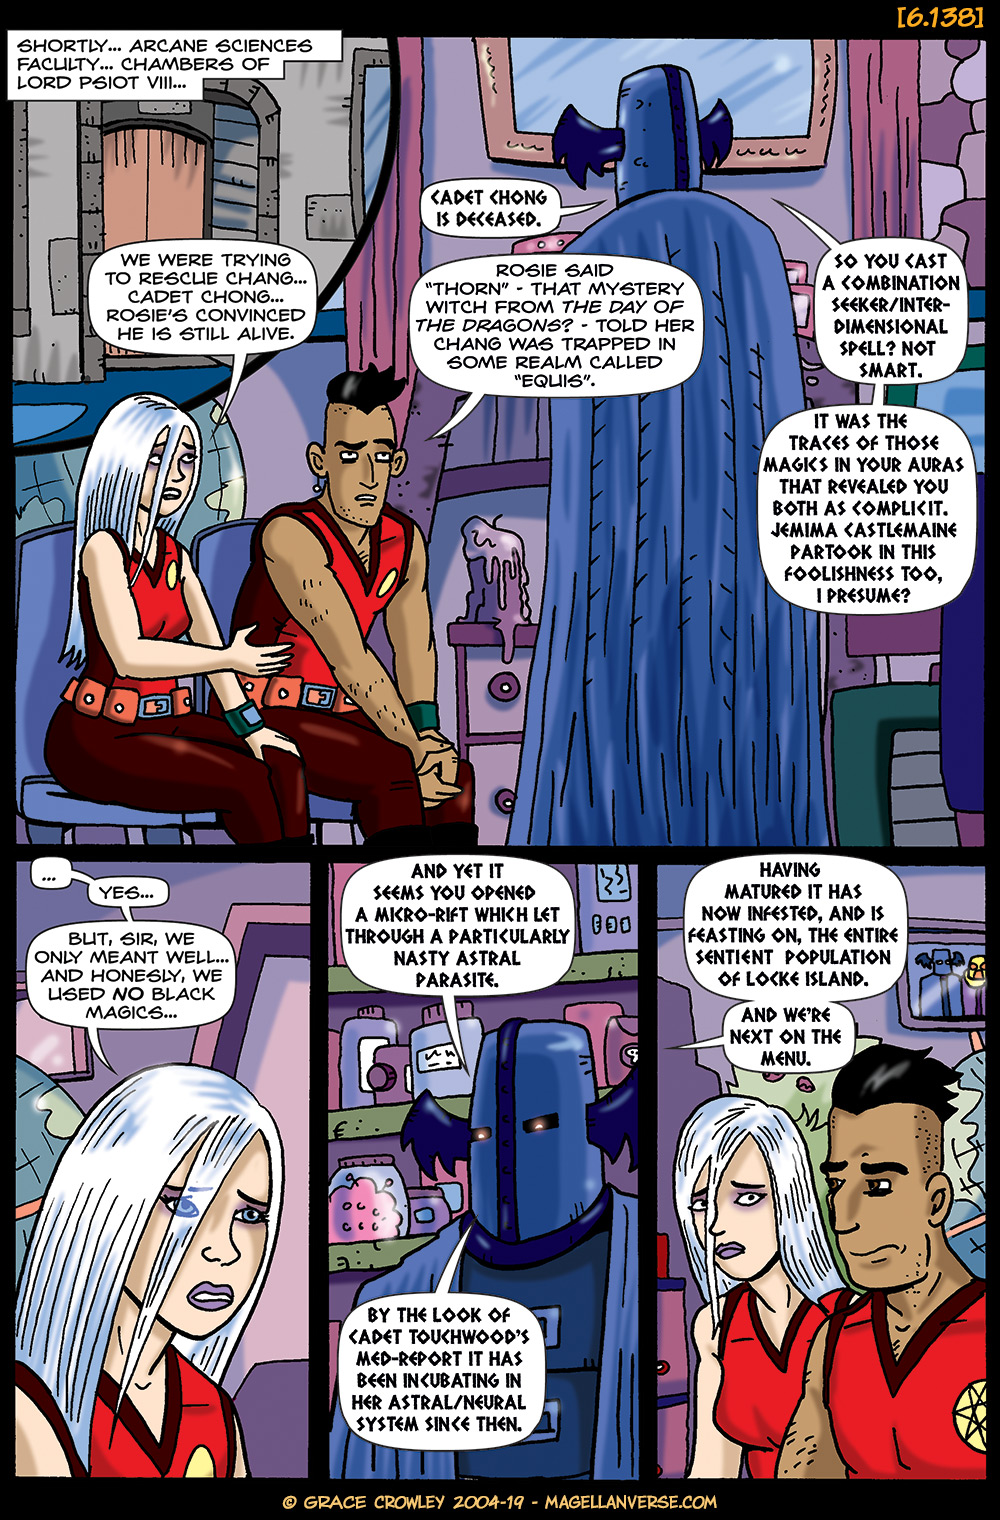 Page 6.138